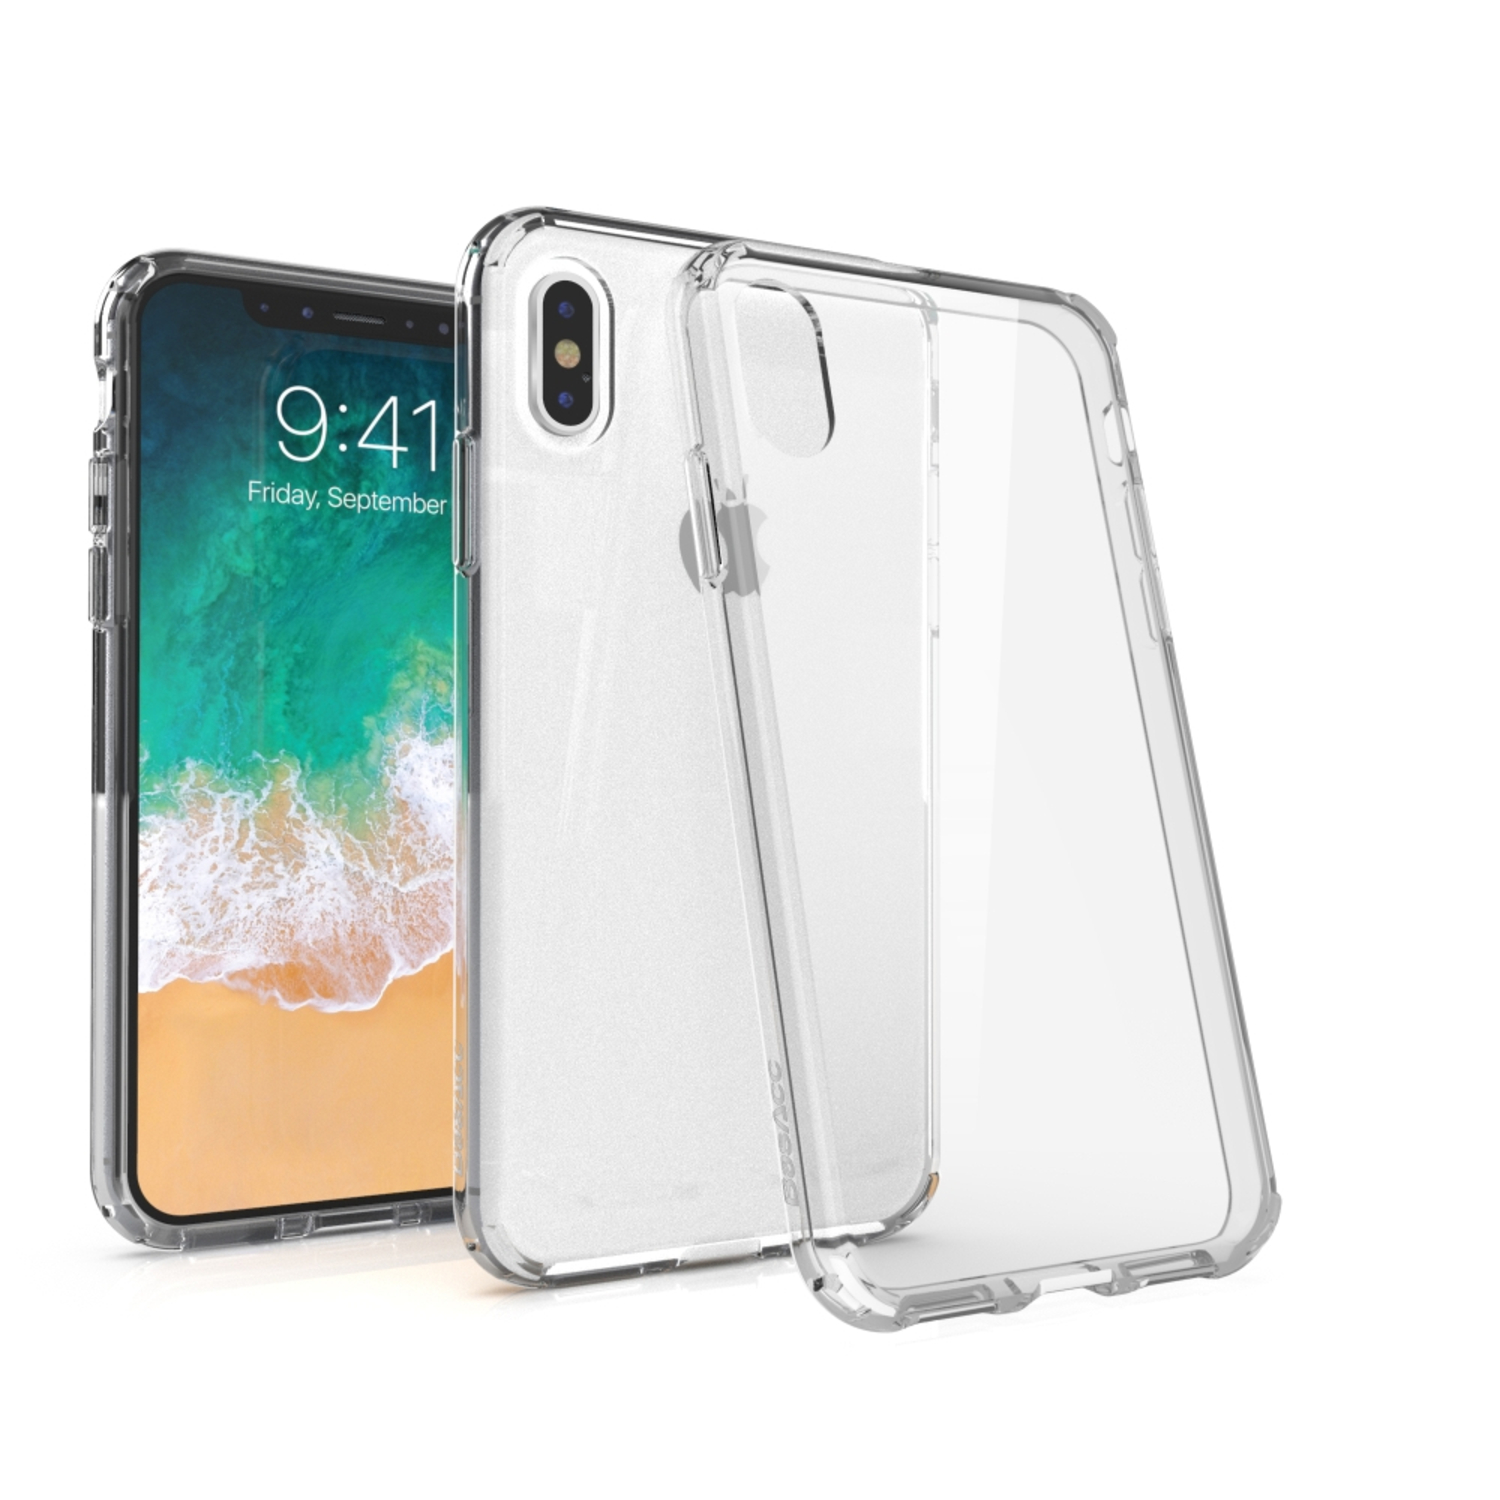 "iPhone X Case, iPhone X edition Case, by BasAcc Crystal Clear Back Hard Panel Cover with Shock-Absorbing TPU Bumper for Apple iPhone X edition 5.8"" Clear (Raised Lip Protection for Camera and Screen)"